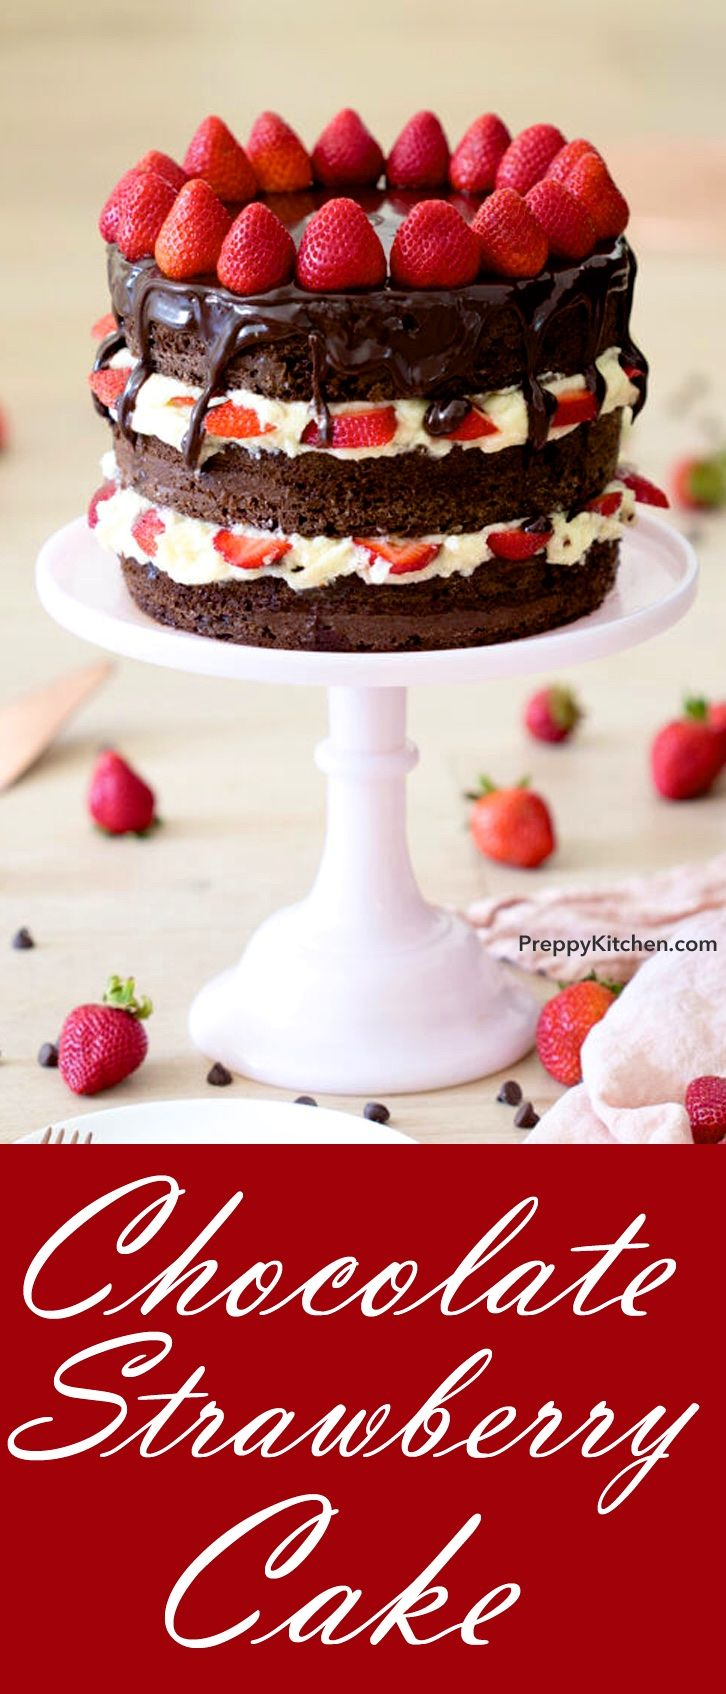 Chocolate Strawberry Cake topped with a chocolate drip.  This is a delicious Cake for any occasion. By preppykitchen.com